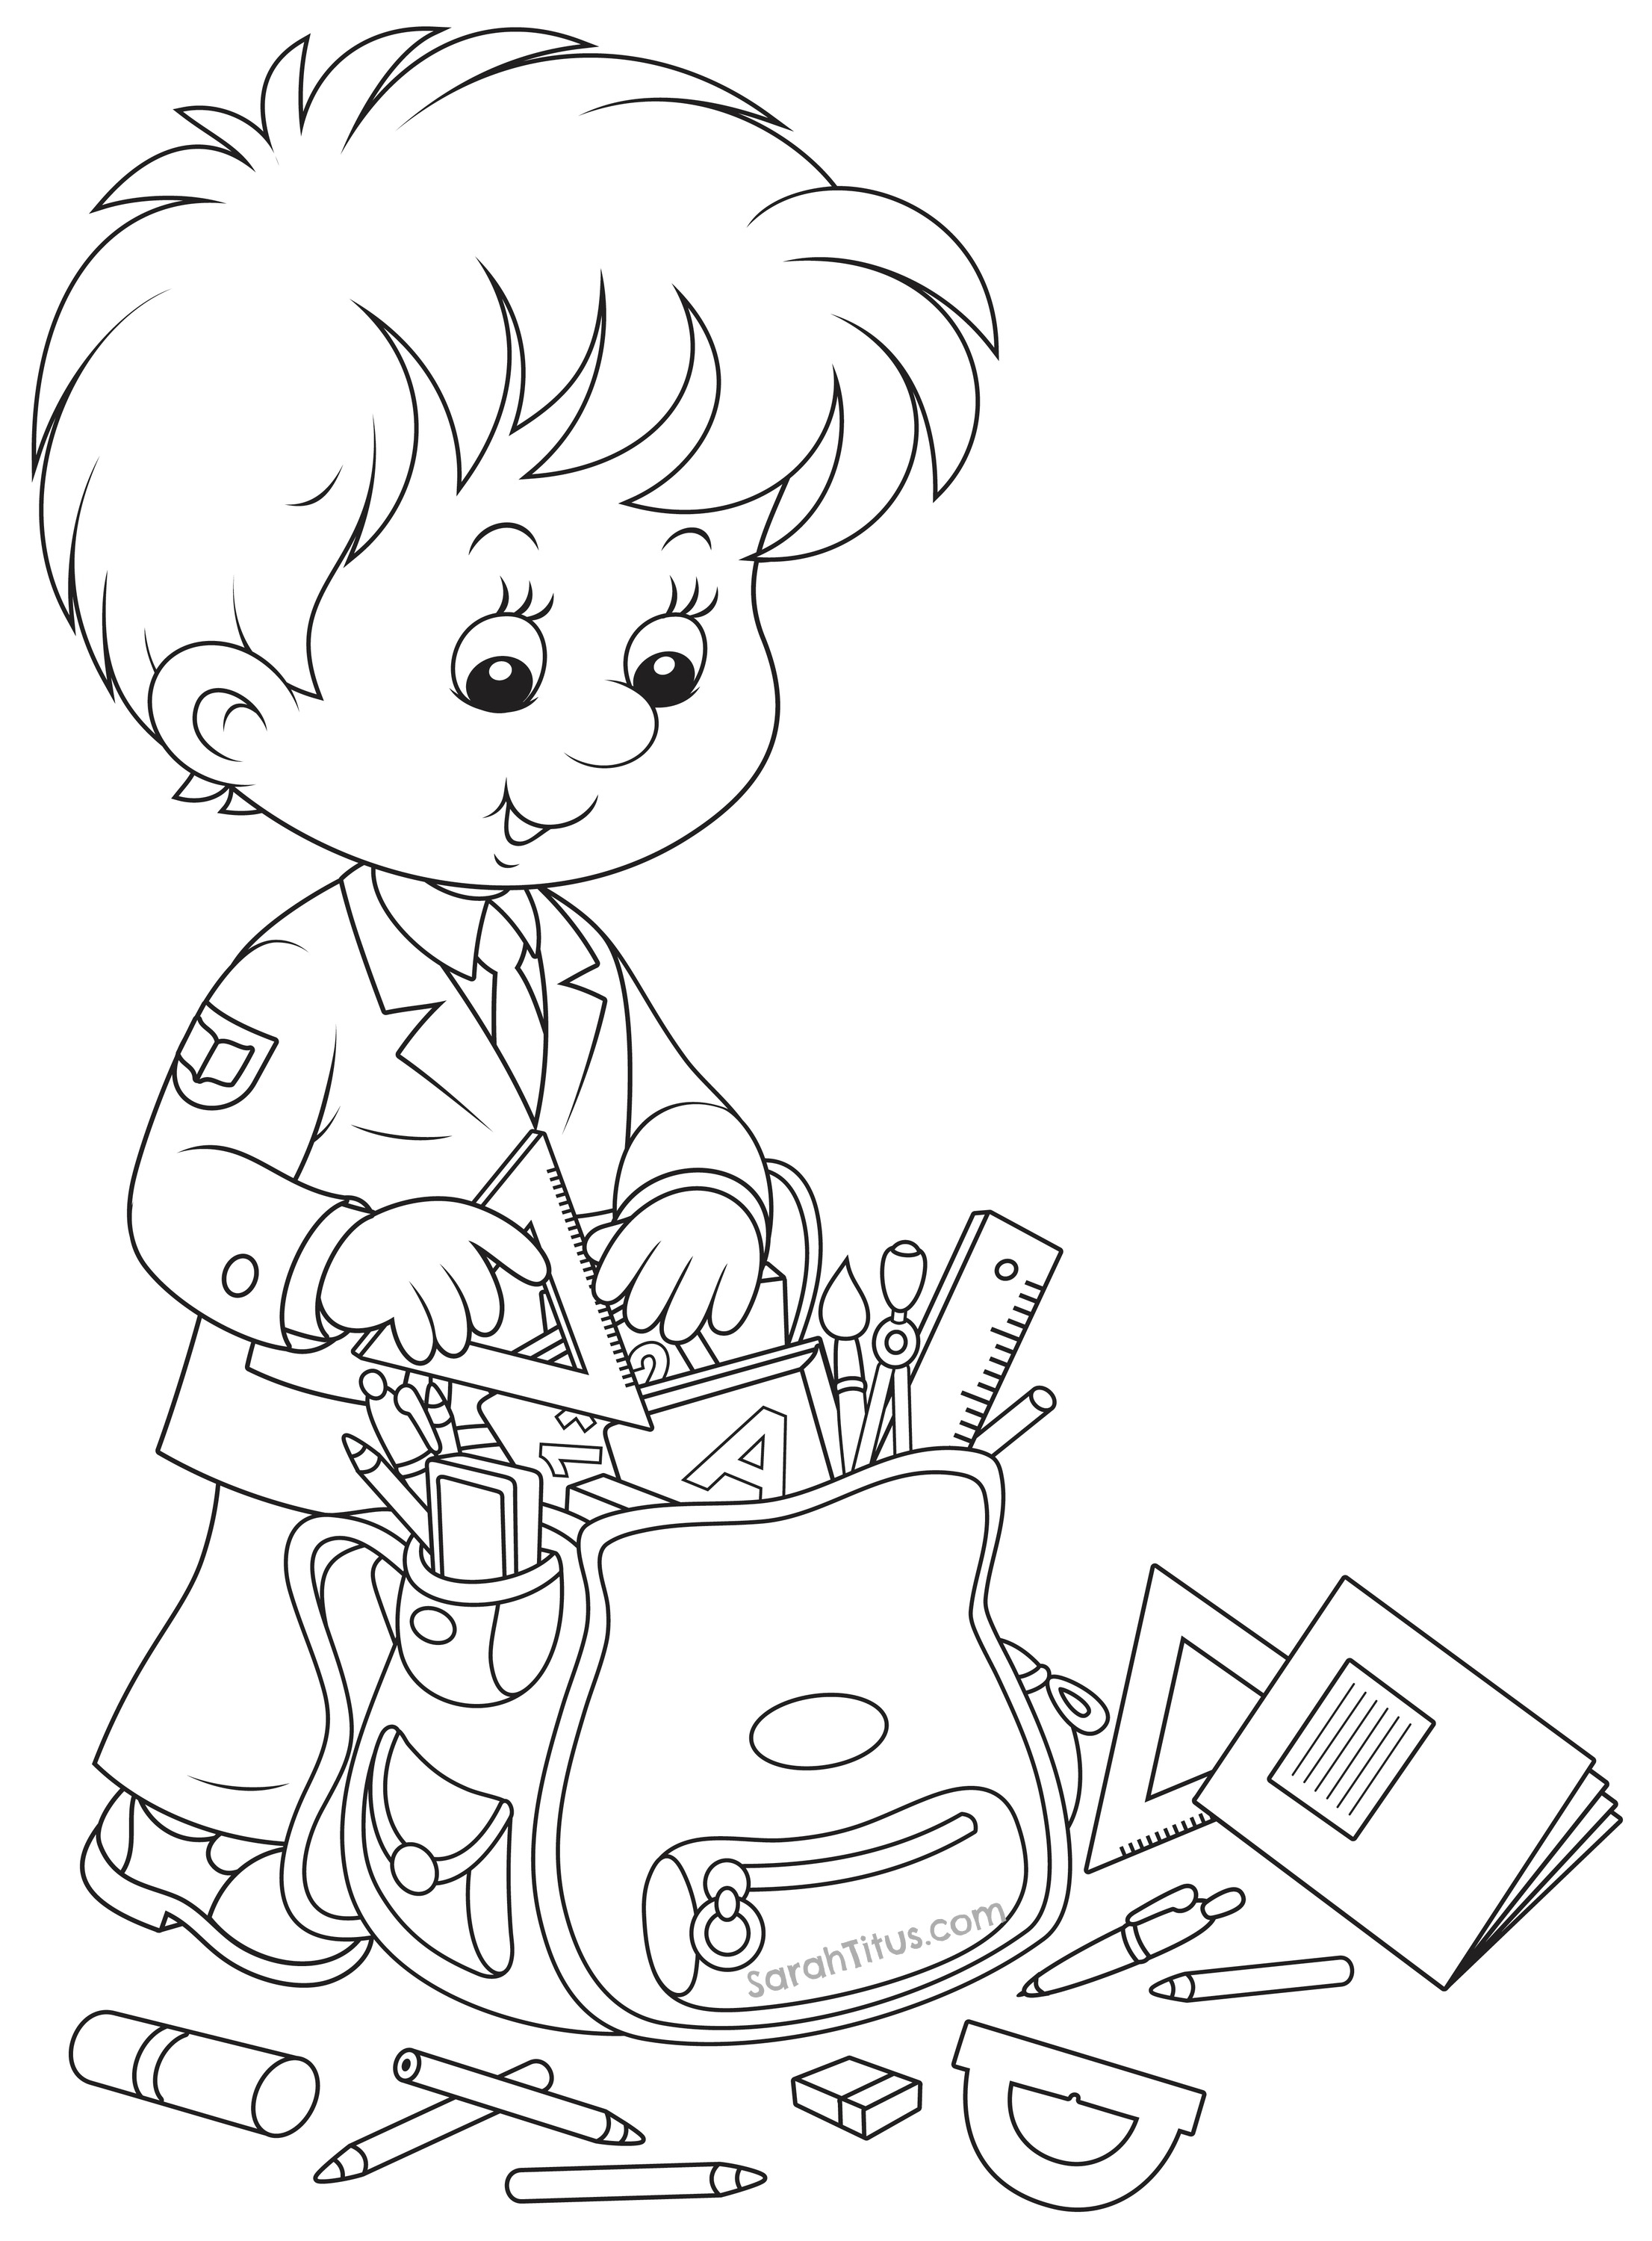 School Coloring Pages Printable Back To School Coloring Pages Sarah Titus Free Book And